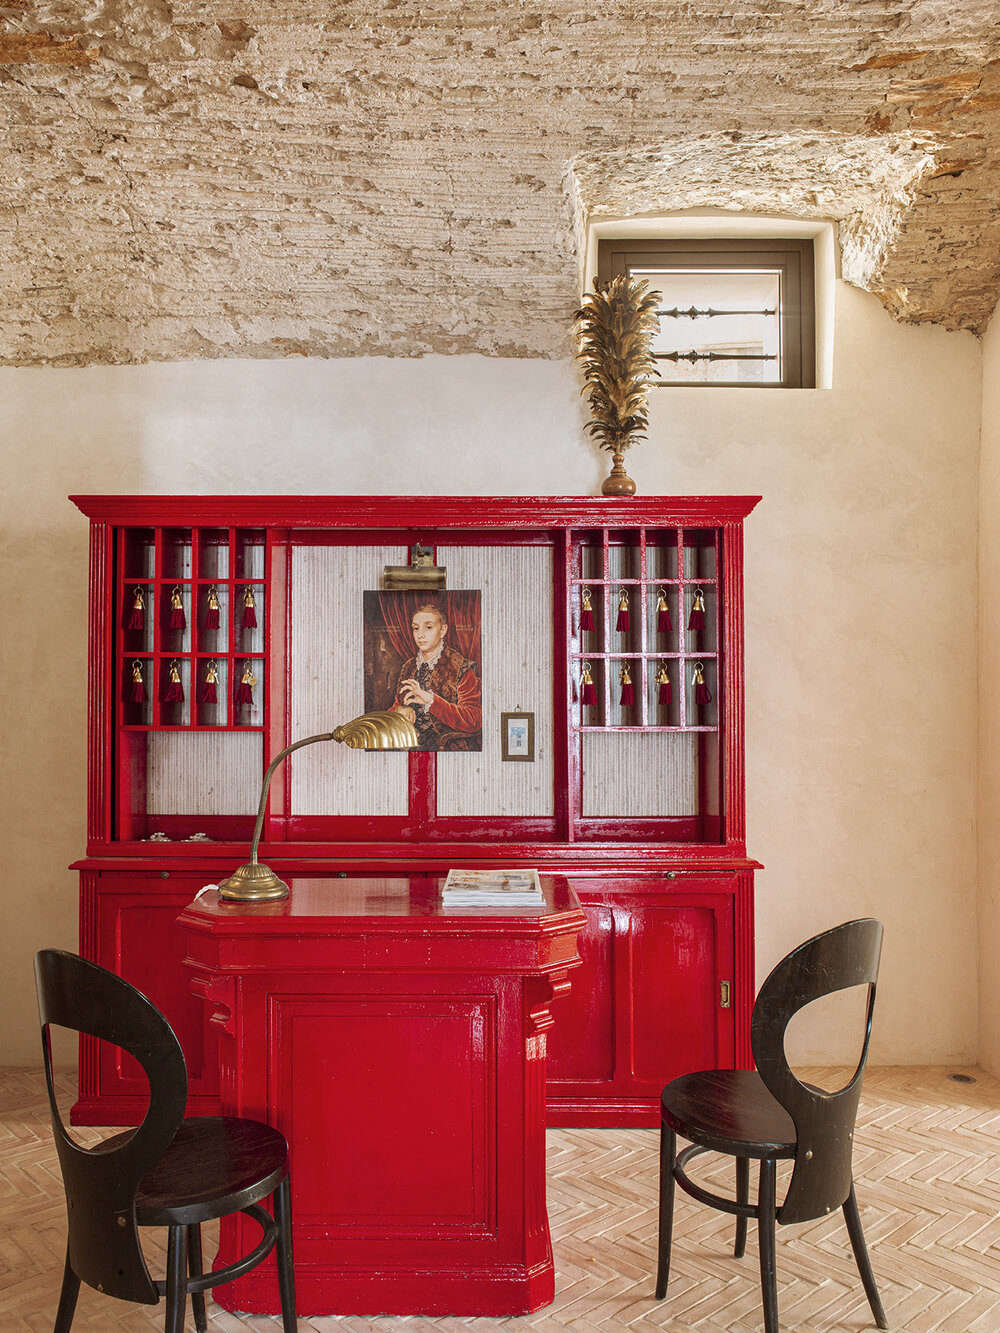 Just add red lacquer: the front desk was created from two flea market pieces renewed with glossy paint and key slots added by a local carpenter. The surfaces here range from newly laid herringbone brick (handmade in Spain) to freshly plastered walls and a ceiling preserved in its excavated state. The chairs are 60s French: the Mouette design from Baumann.